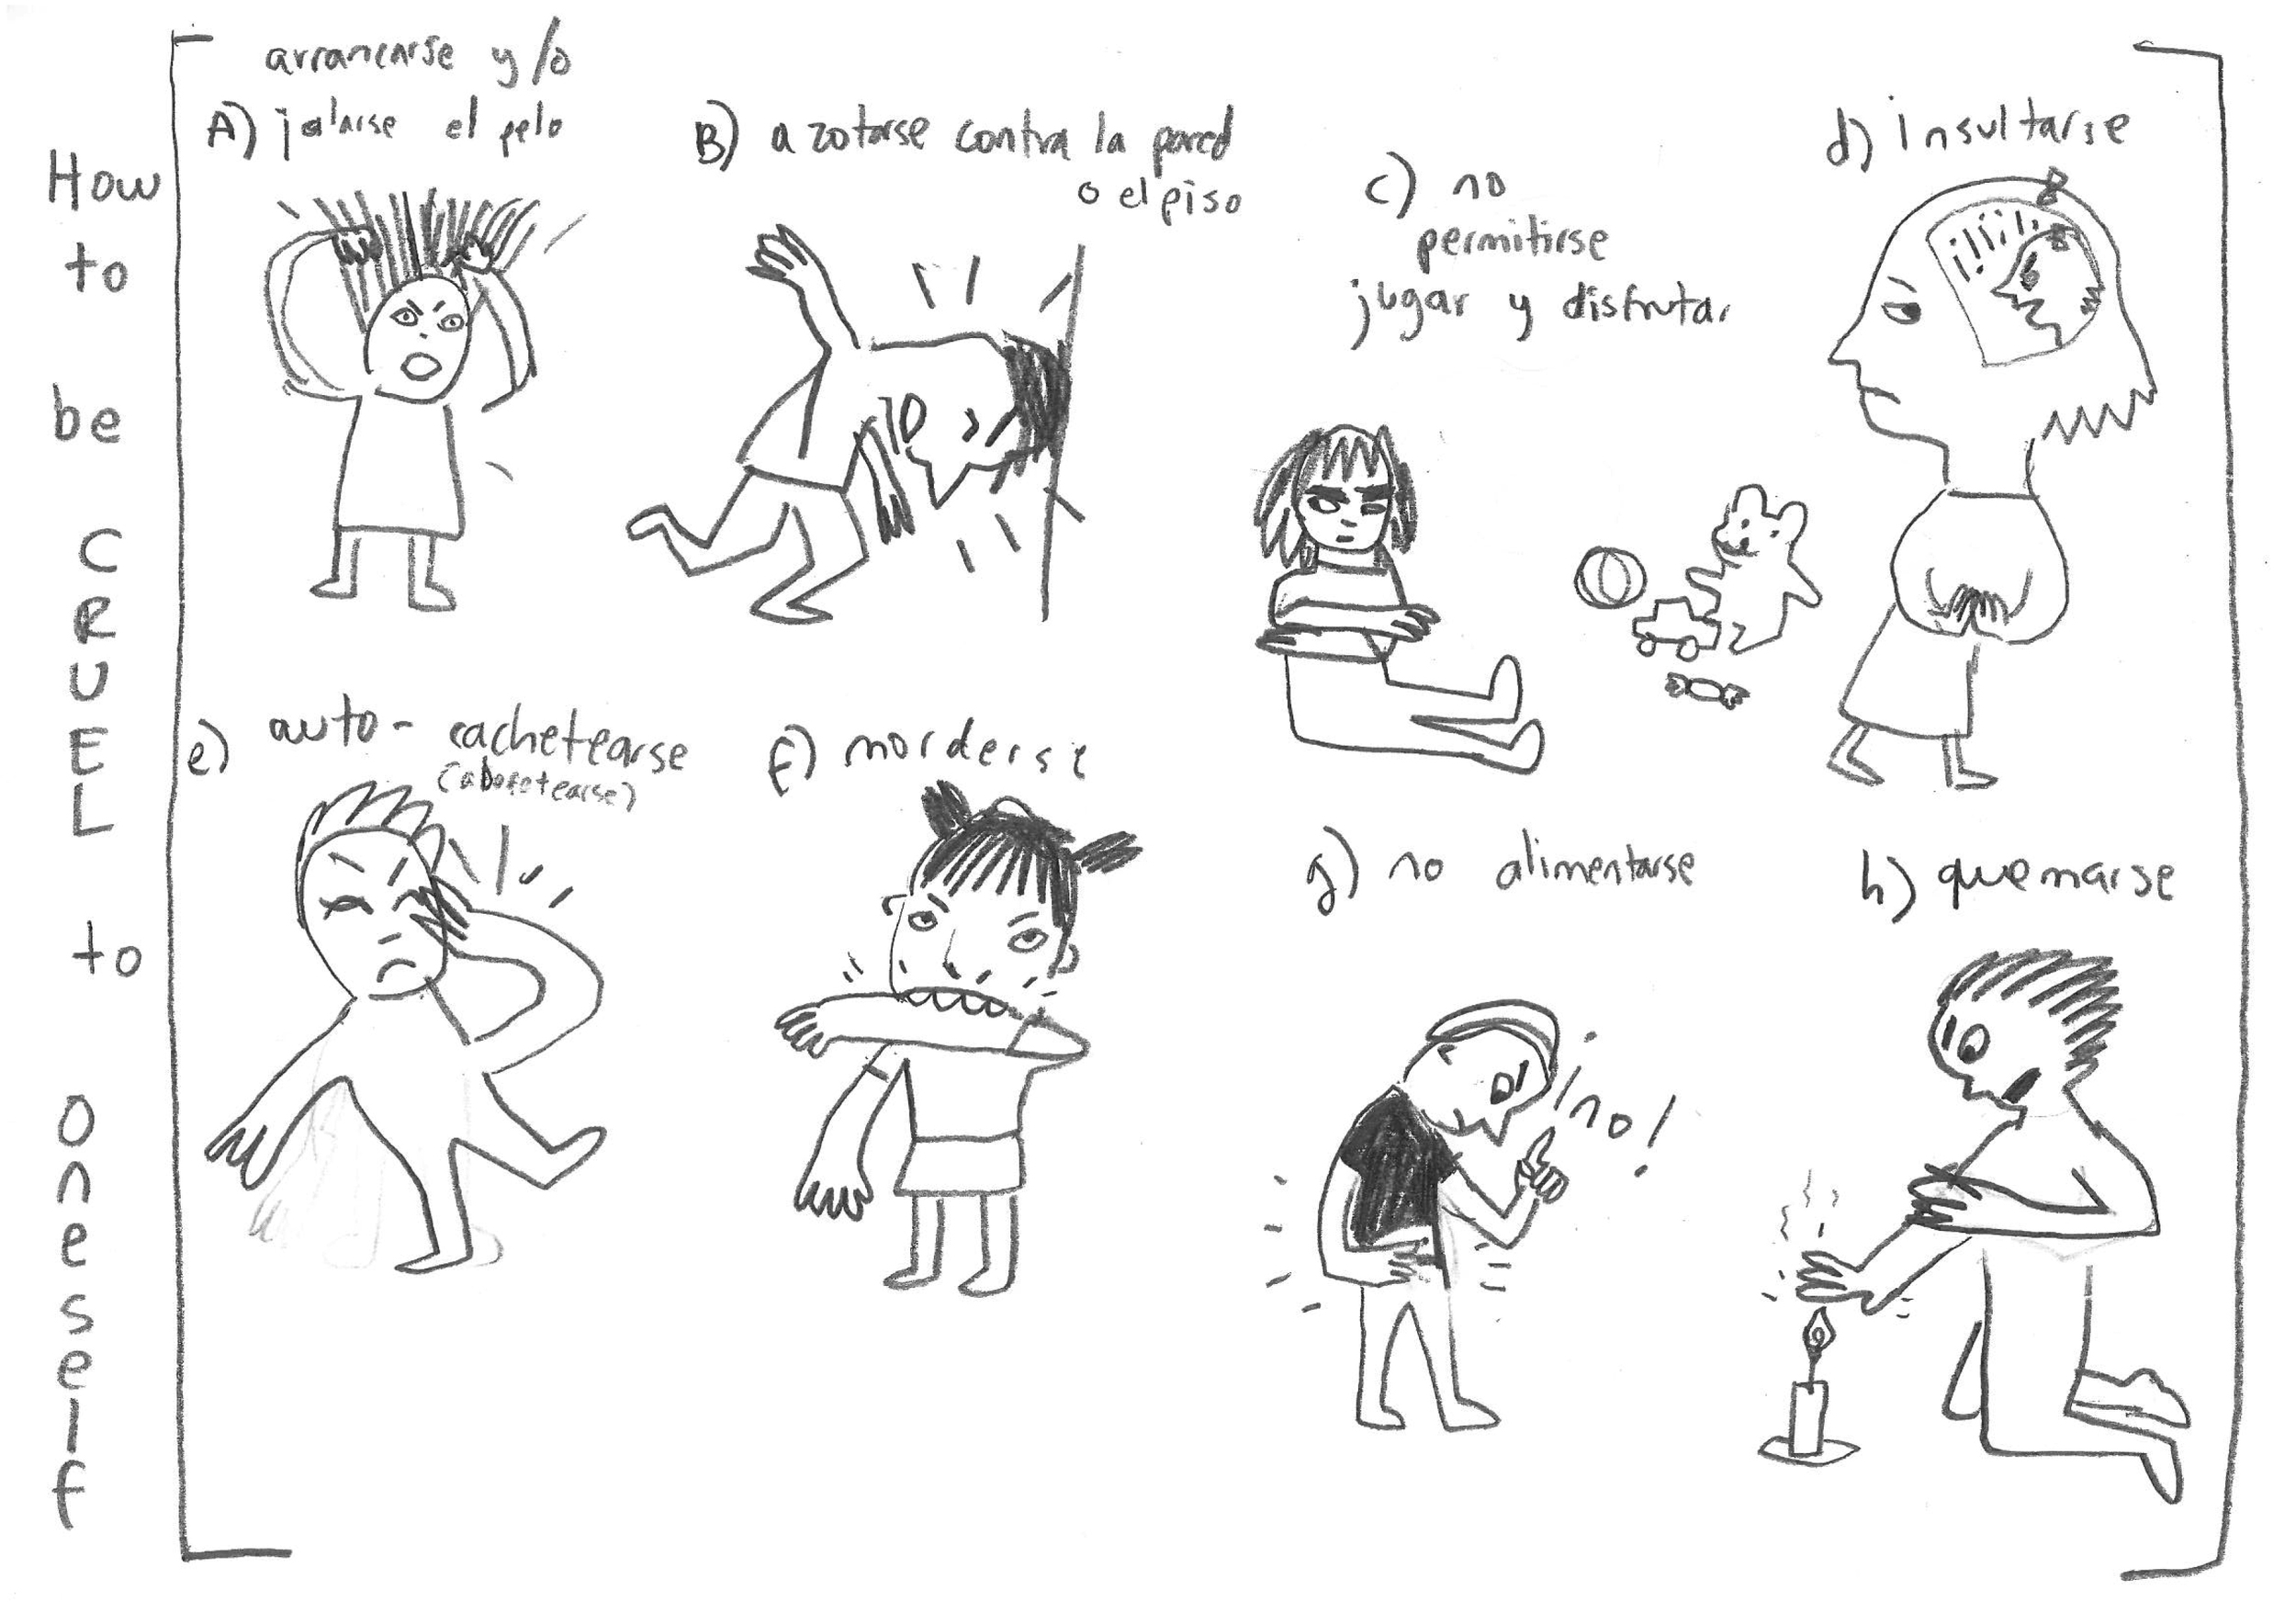 Sketch by Daniela Martagón, preliminary study for Cruelty Bites by Wonder Ponder. A) Pull out or pull one's hair. B) Bang head against the wall. C) Not allow oneself any play or enjoyment. D) Insult oneself. E) Slap oneself. F) Bite oneself. G) Not feed oneself. H) Burn oneself.